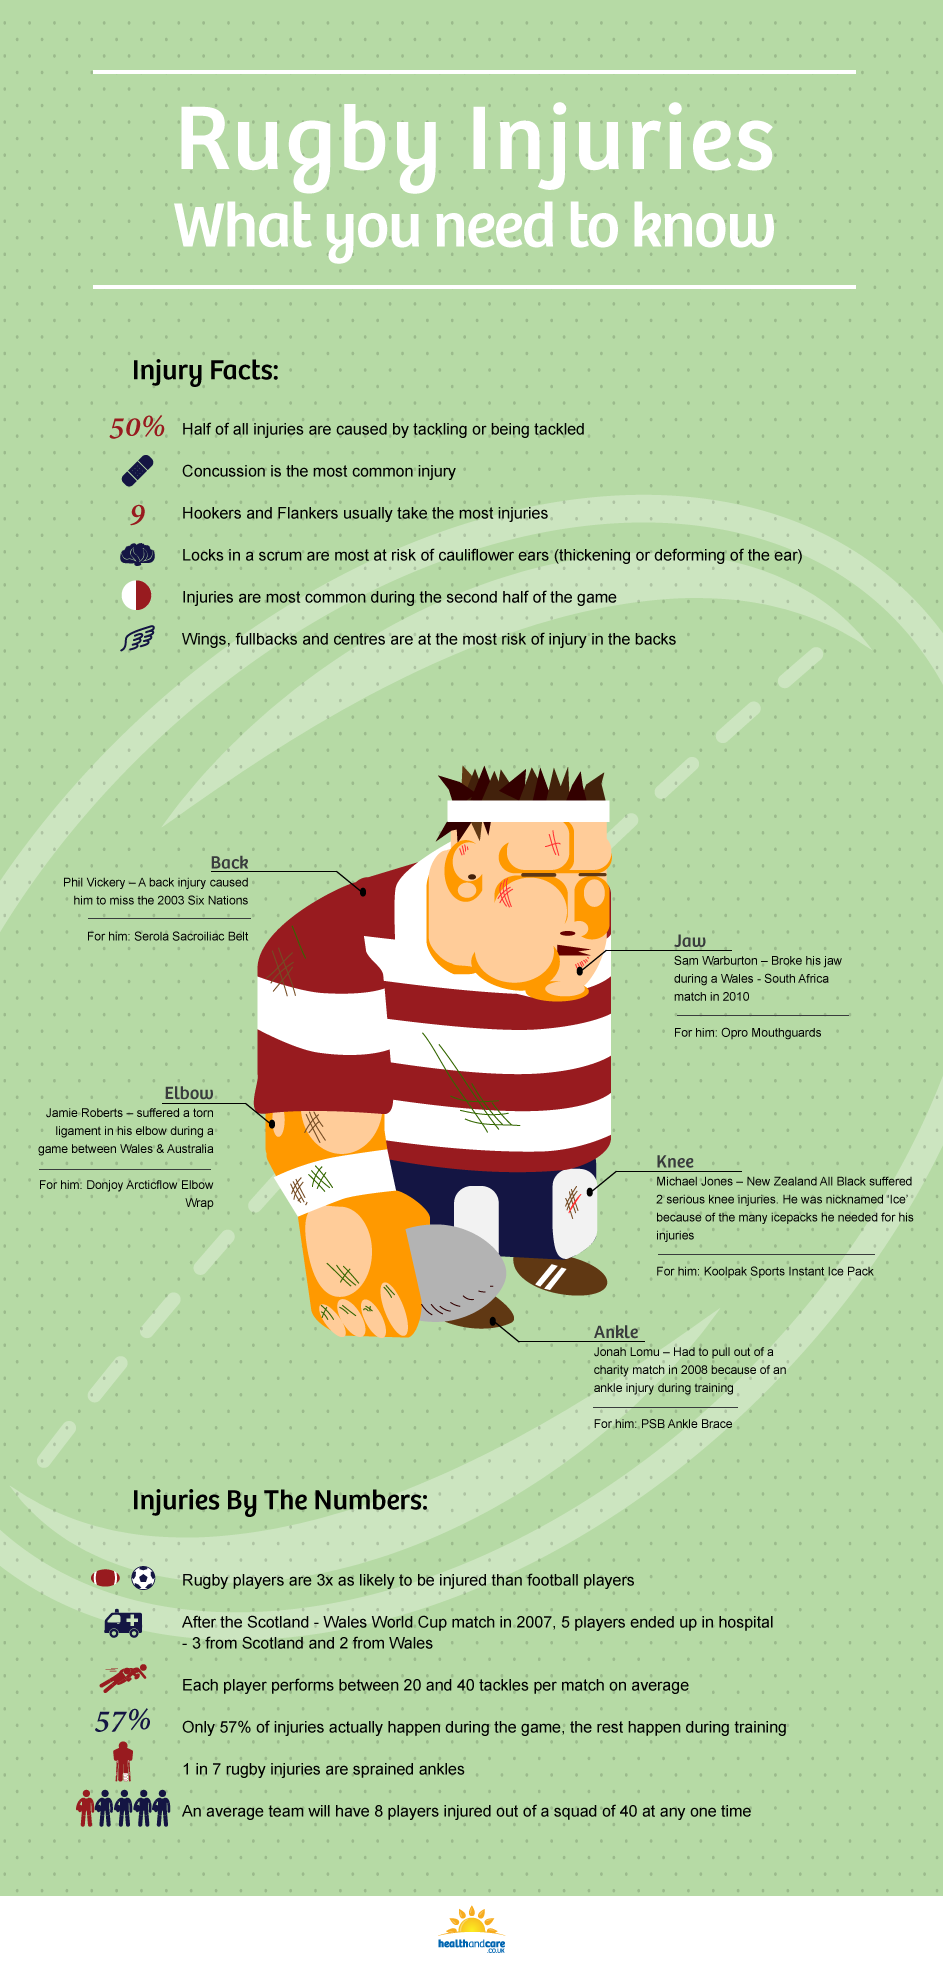 Learn About the Injuries That Can Be Inflicted Playing Rugby